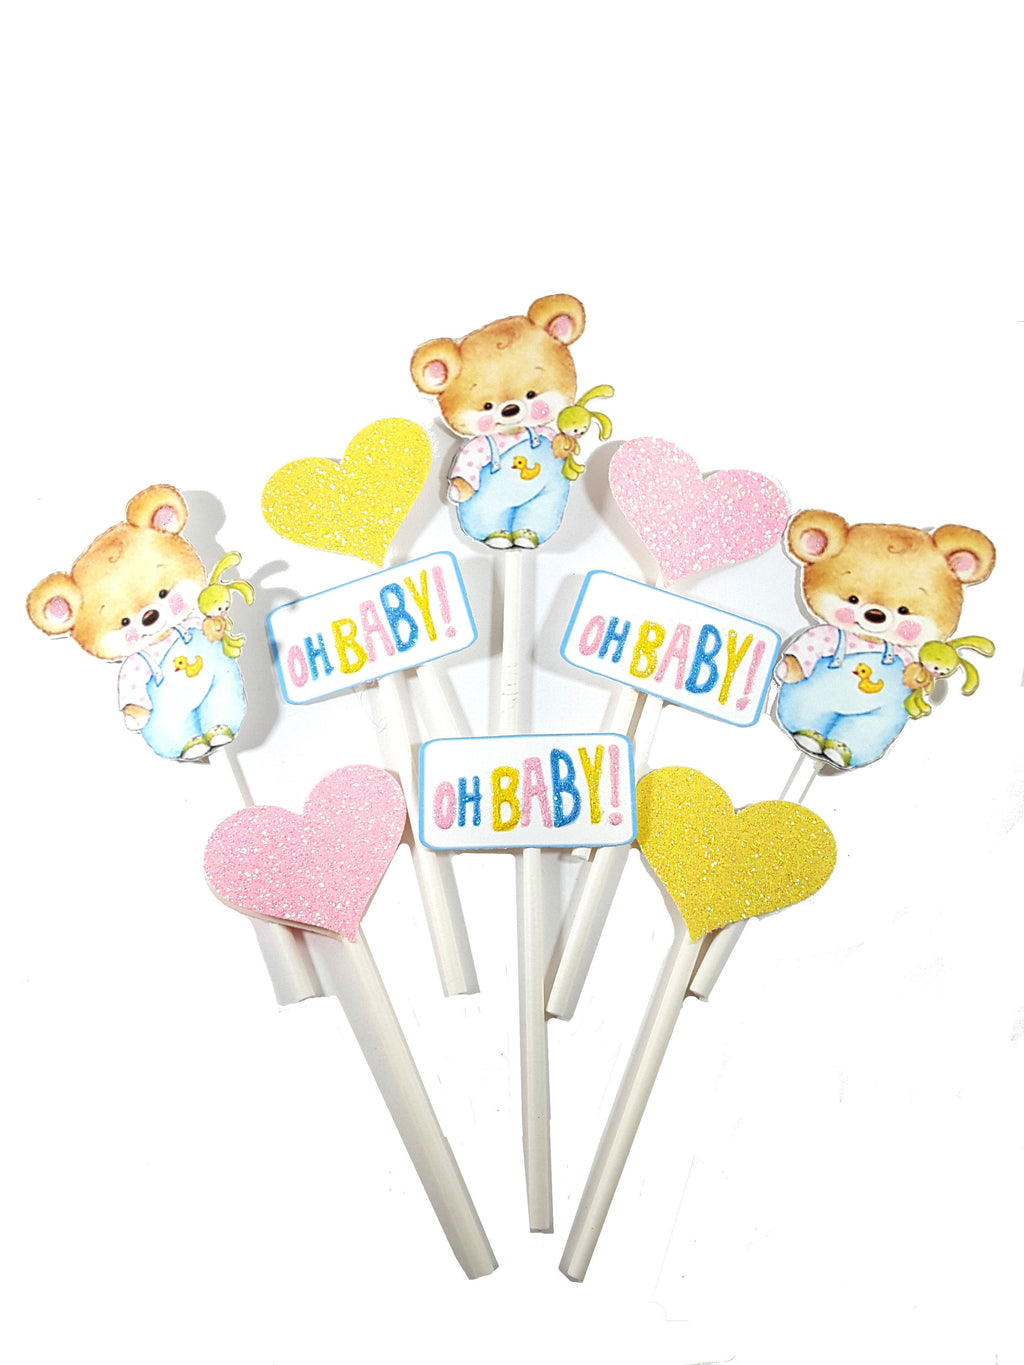 Cupcake Toppers  Featuring Teddy Bear, Oh Baby Signs and Glitter Hearts